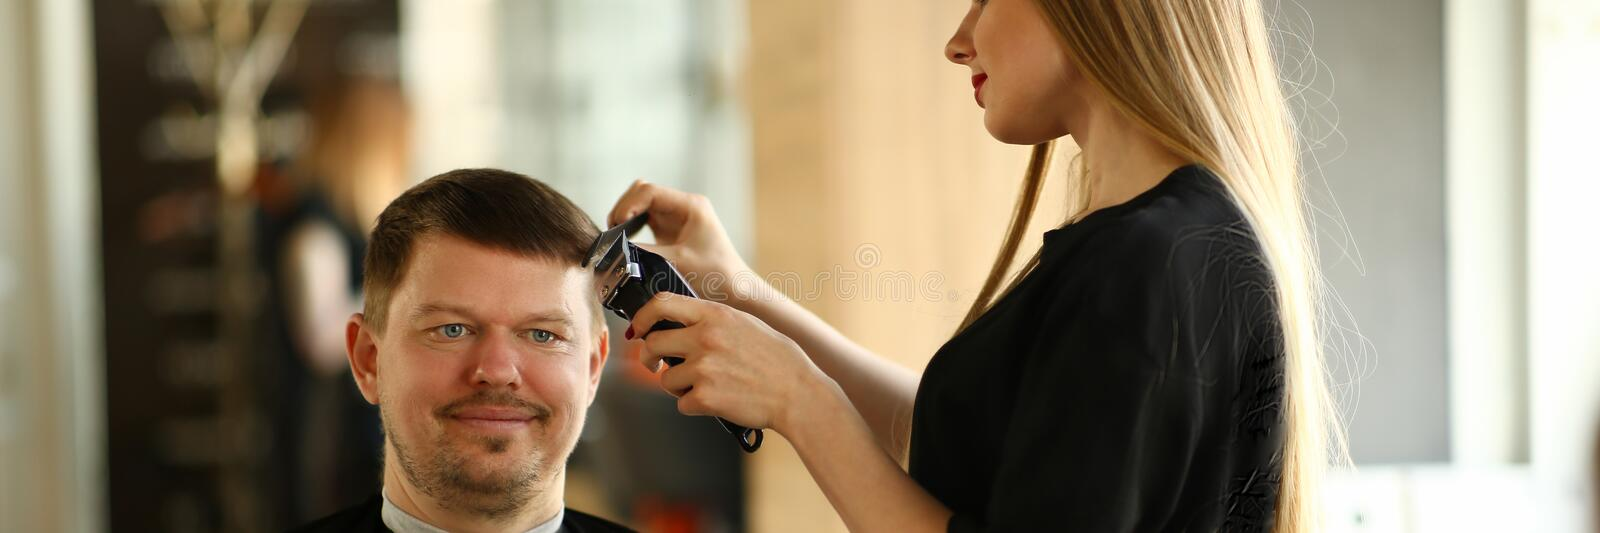 Kvinnafris?r Making Razor Haircut f?r man arkivbild